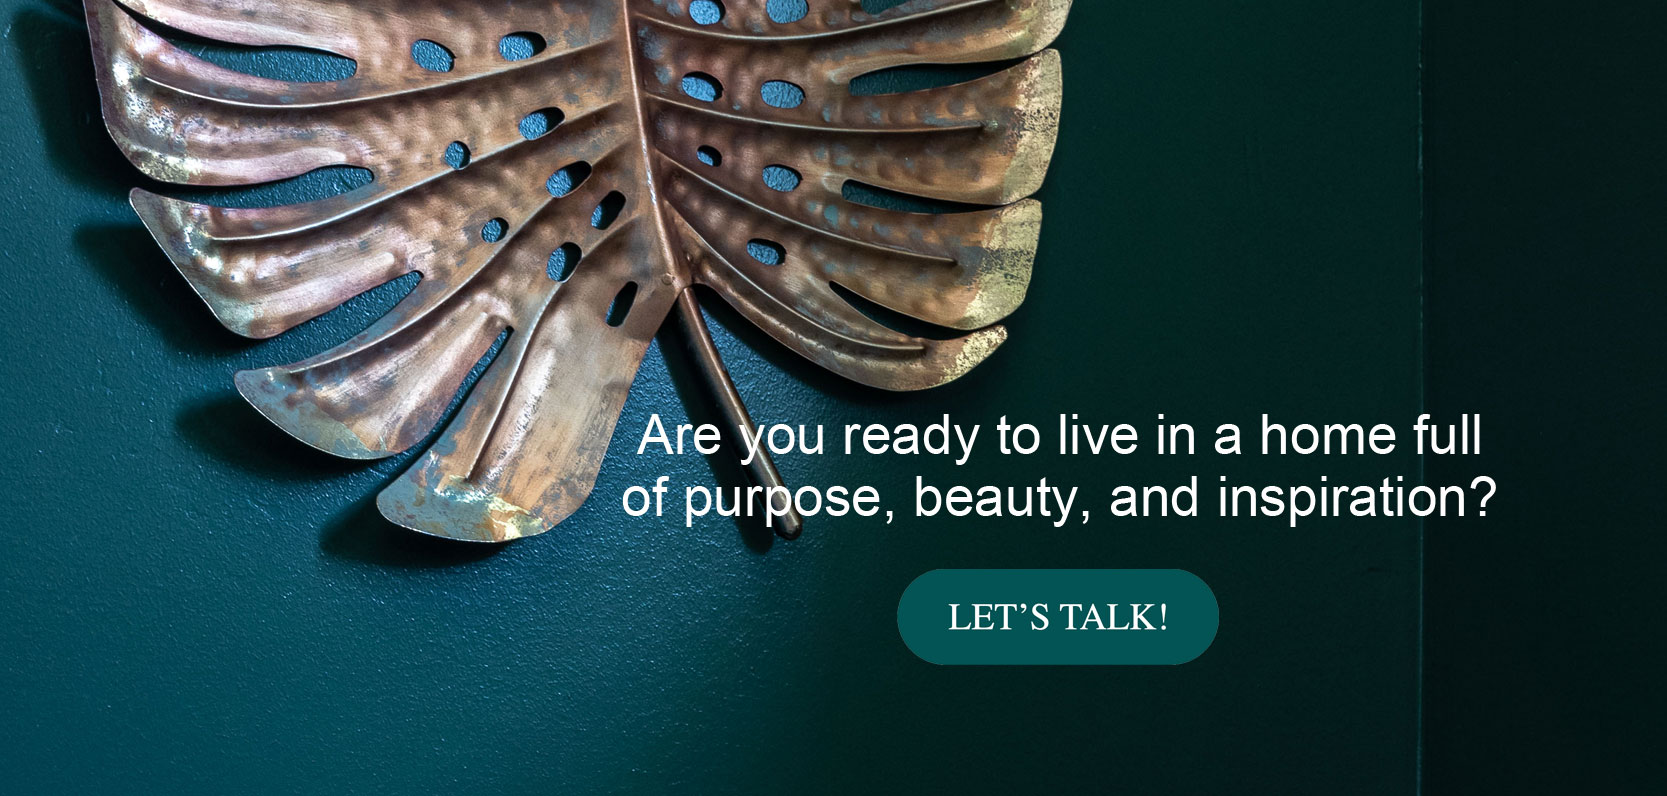 Are you ready to live in a home full of purpose, beauty, and inspiration?